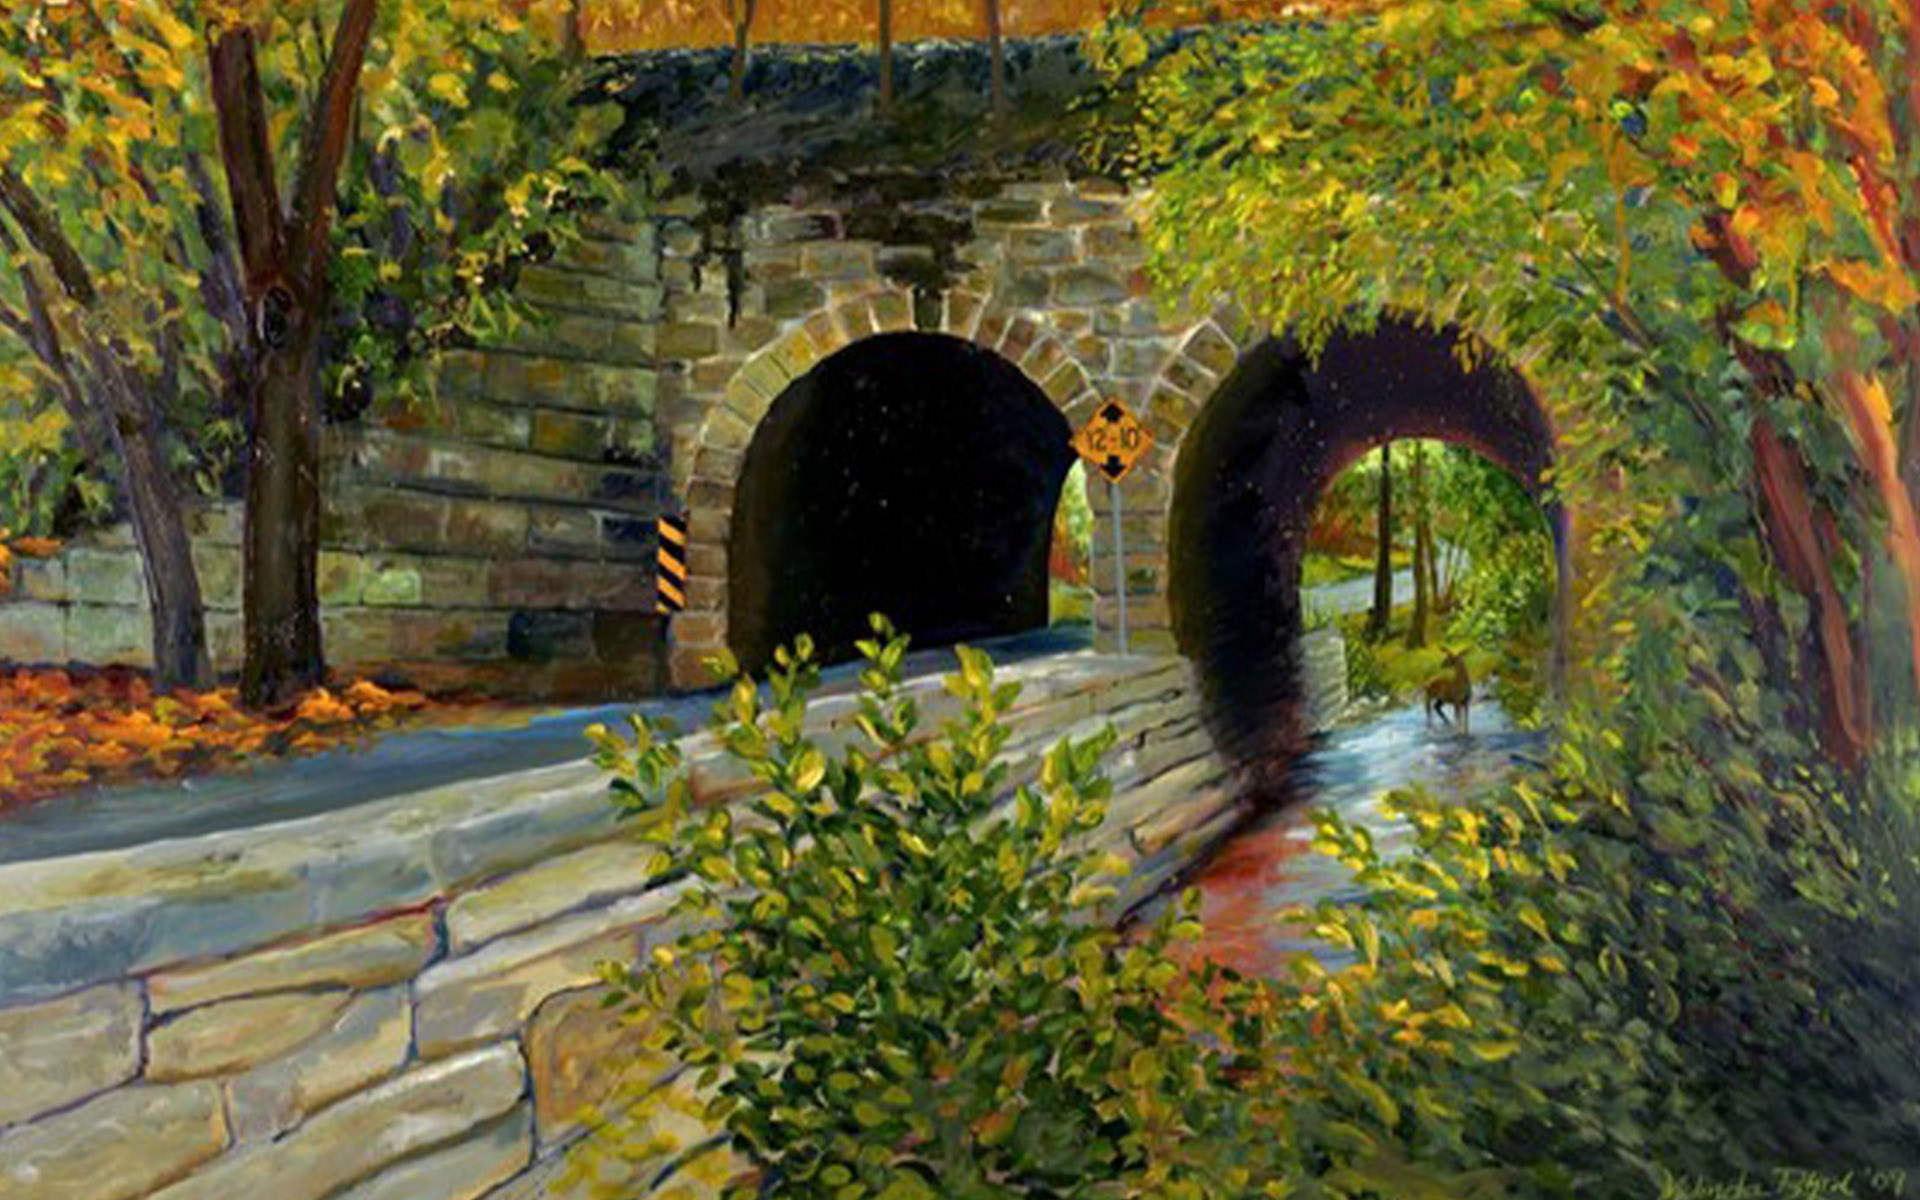 Homepage - Painting of Tunnels and Deer with Fall Foliage